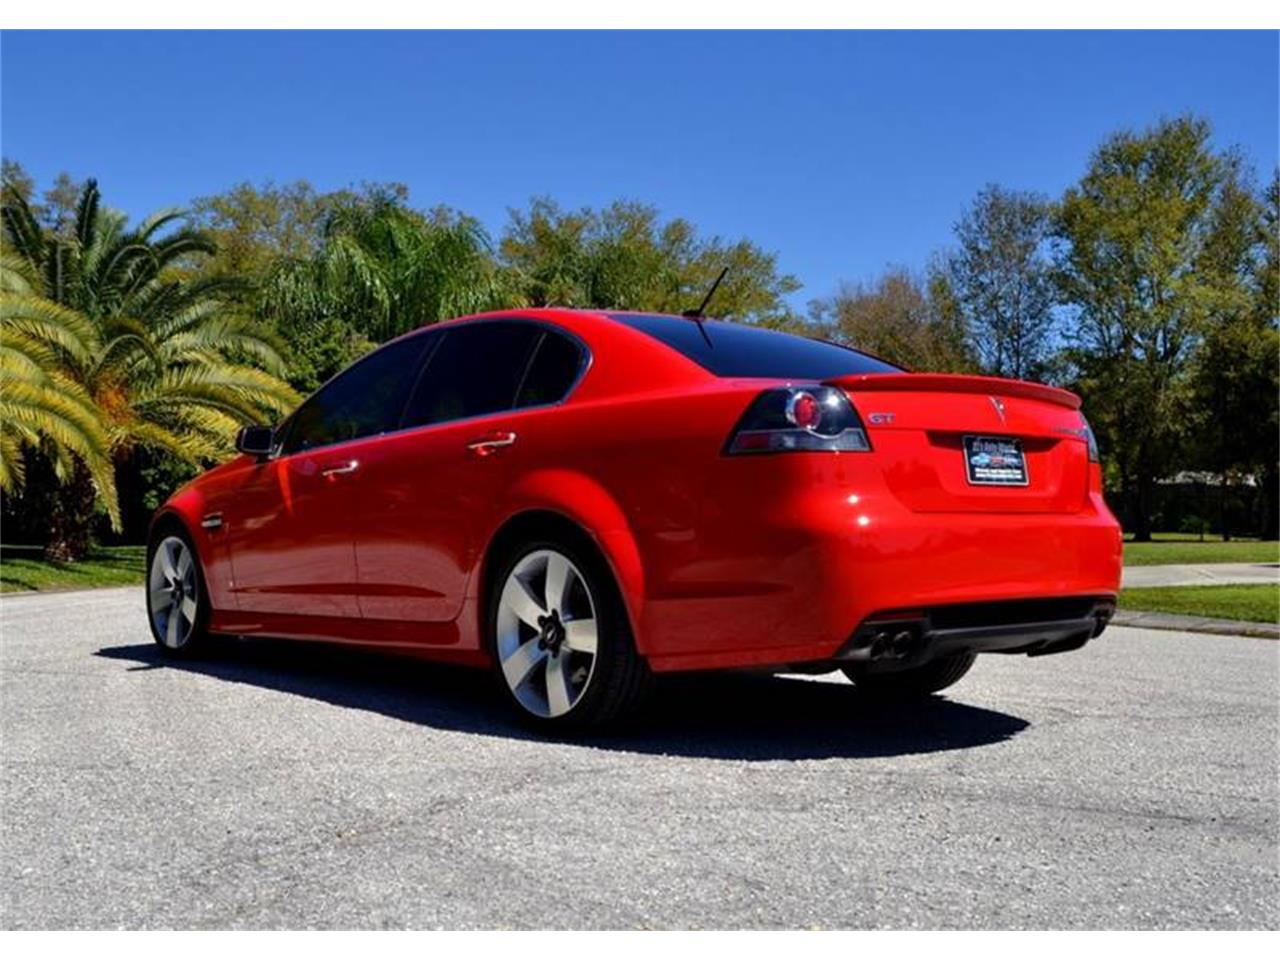 2009 Pontiac G8 for sale in Clearwater, FL – photo 11